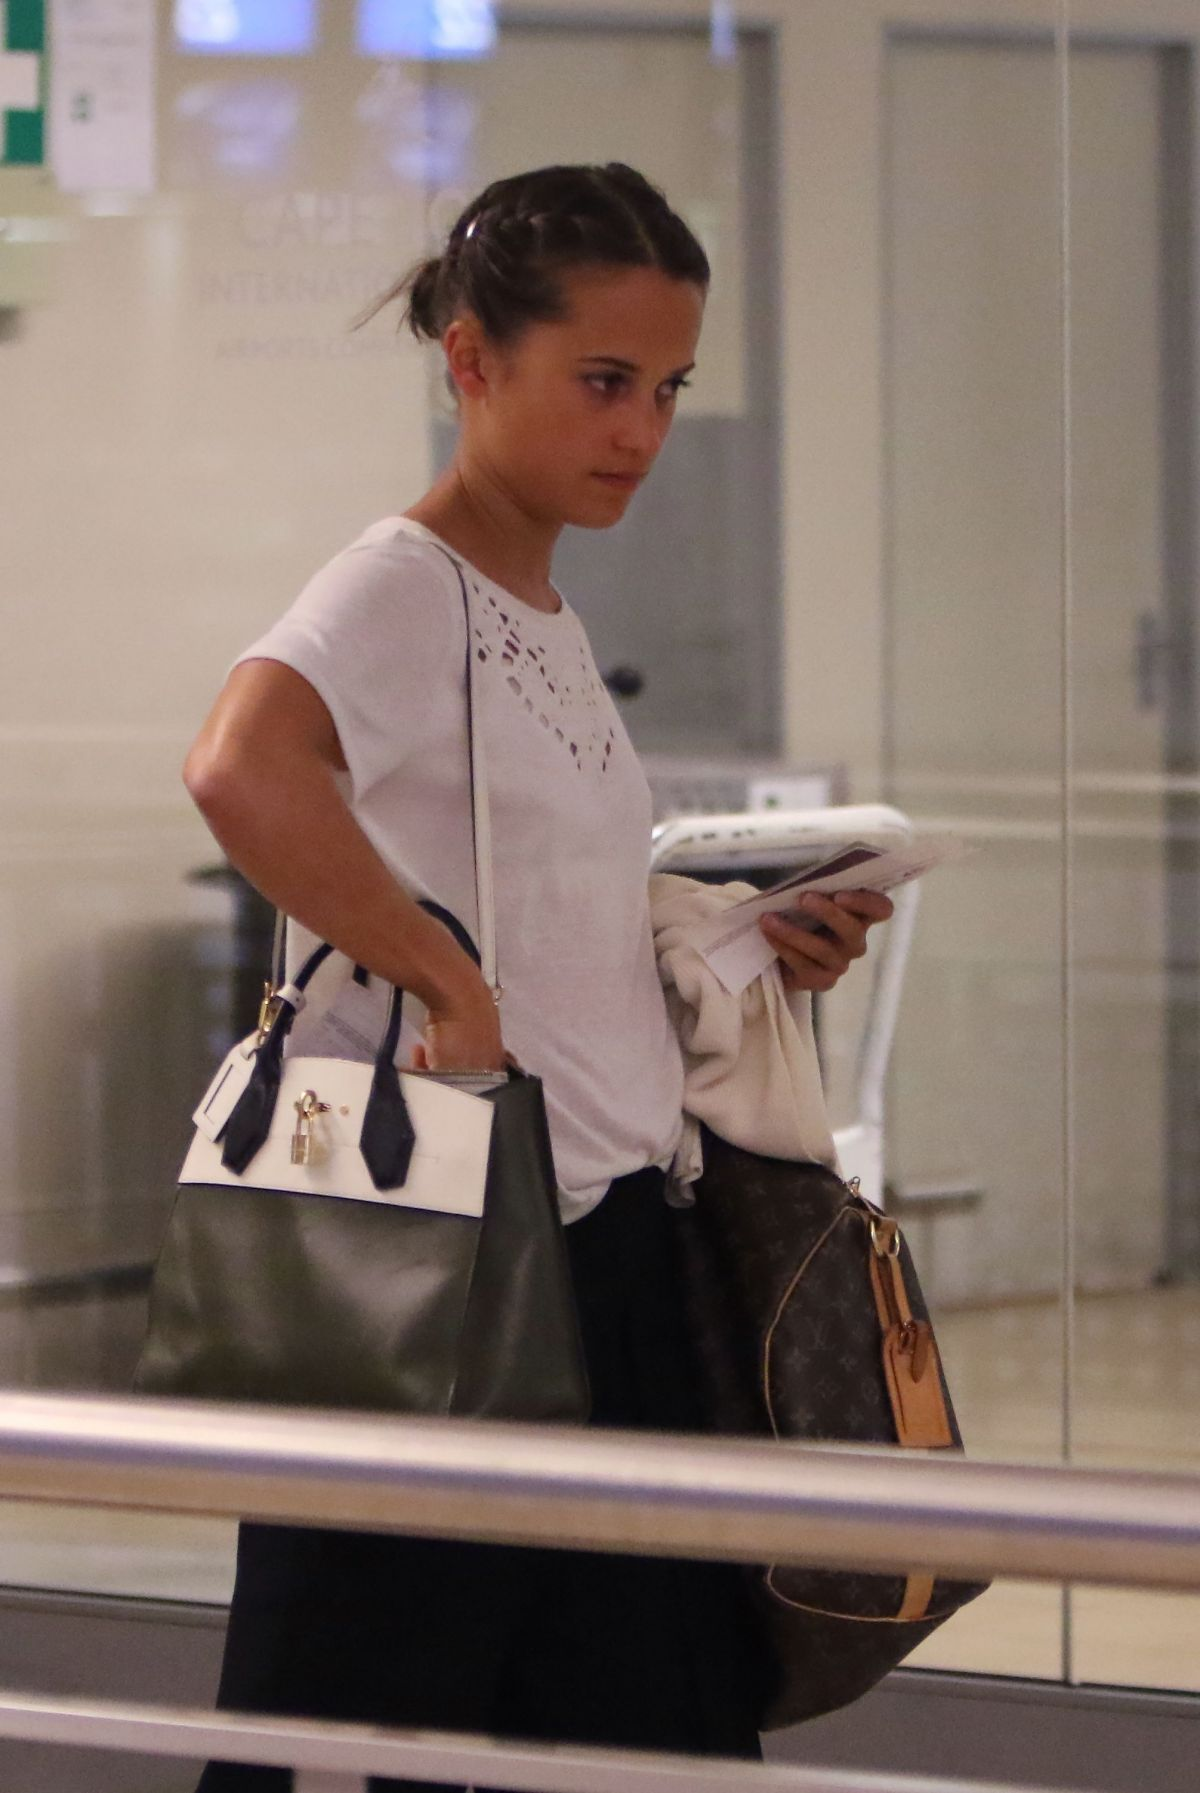 ALICIA VKANDER at Cape Town International Airport in South Africa 02/24/2017